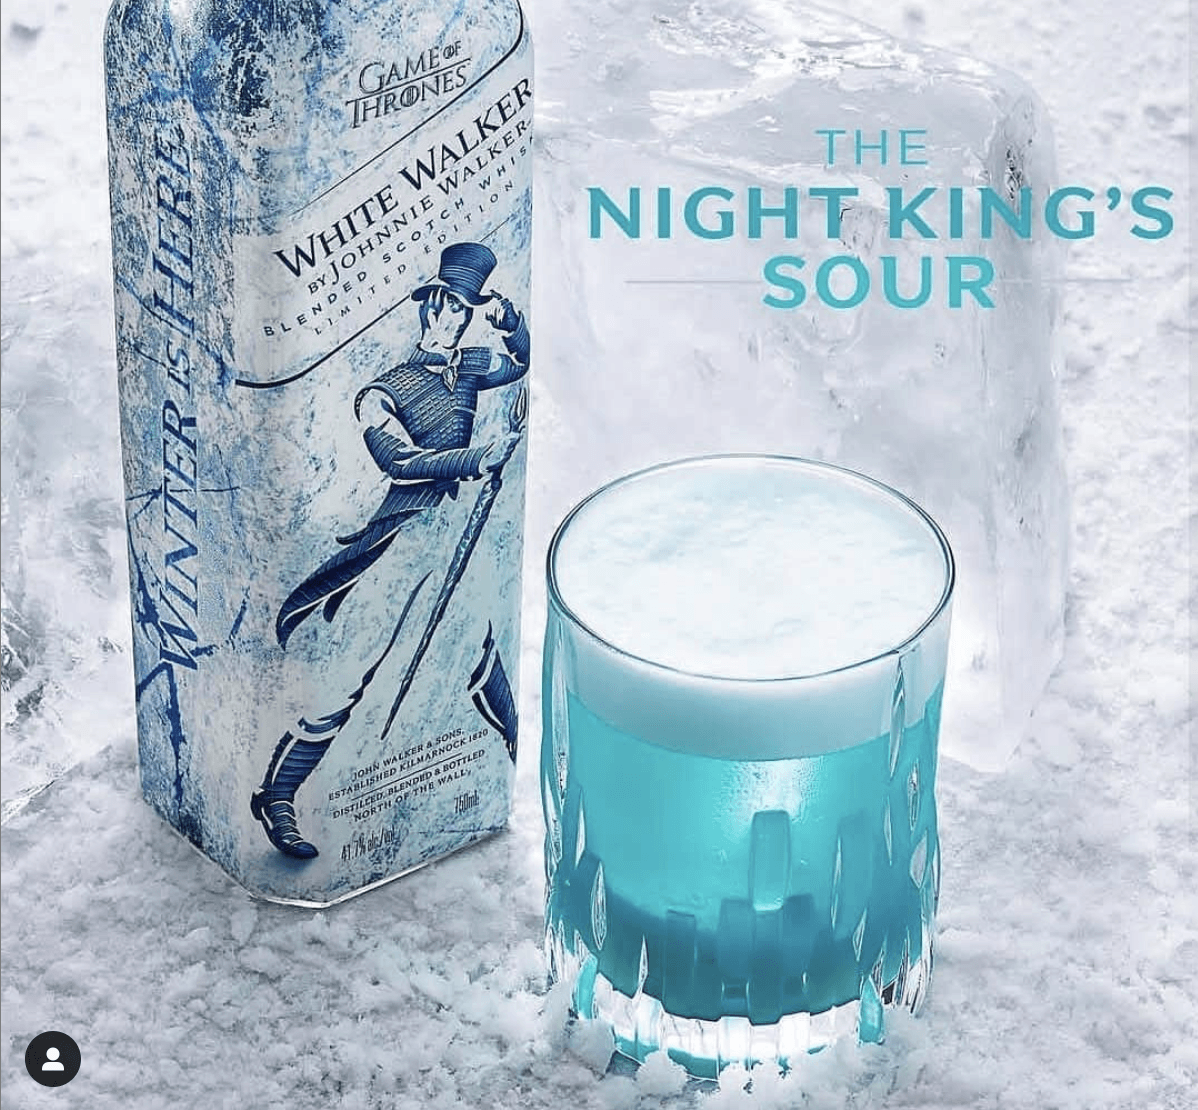 Games of Thrones - Johnnie Walker, White Walker